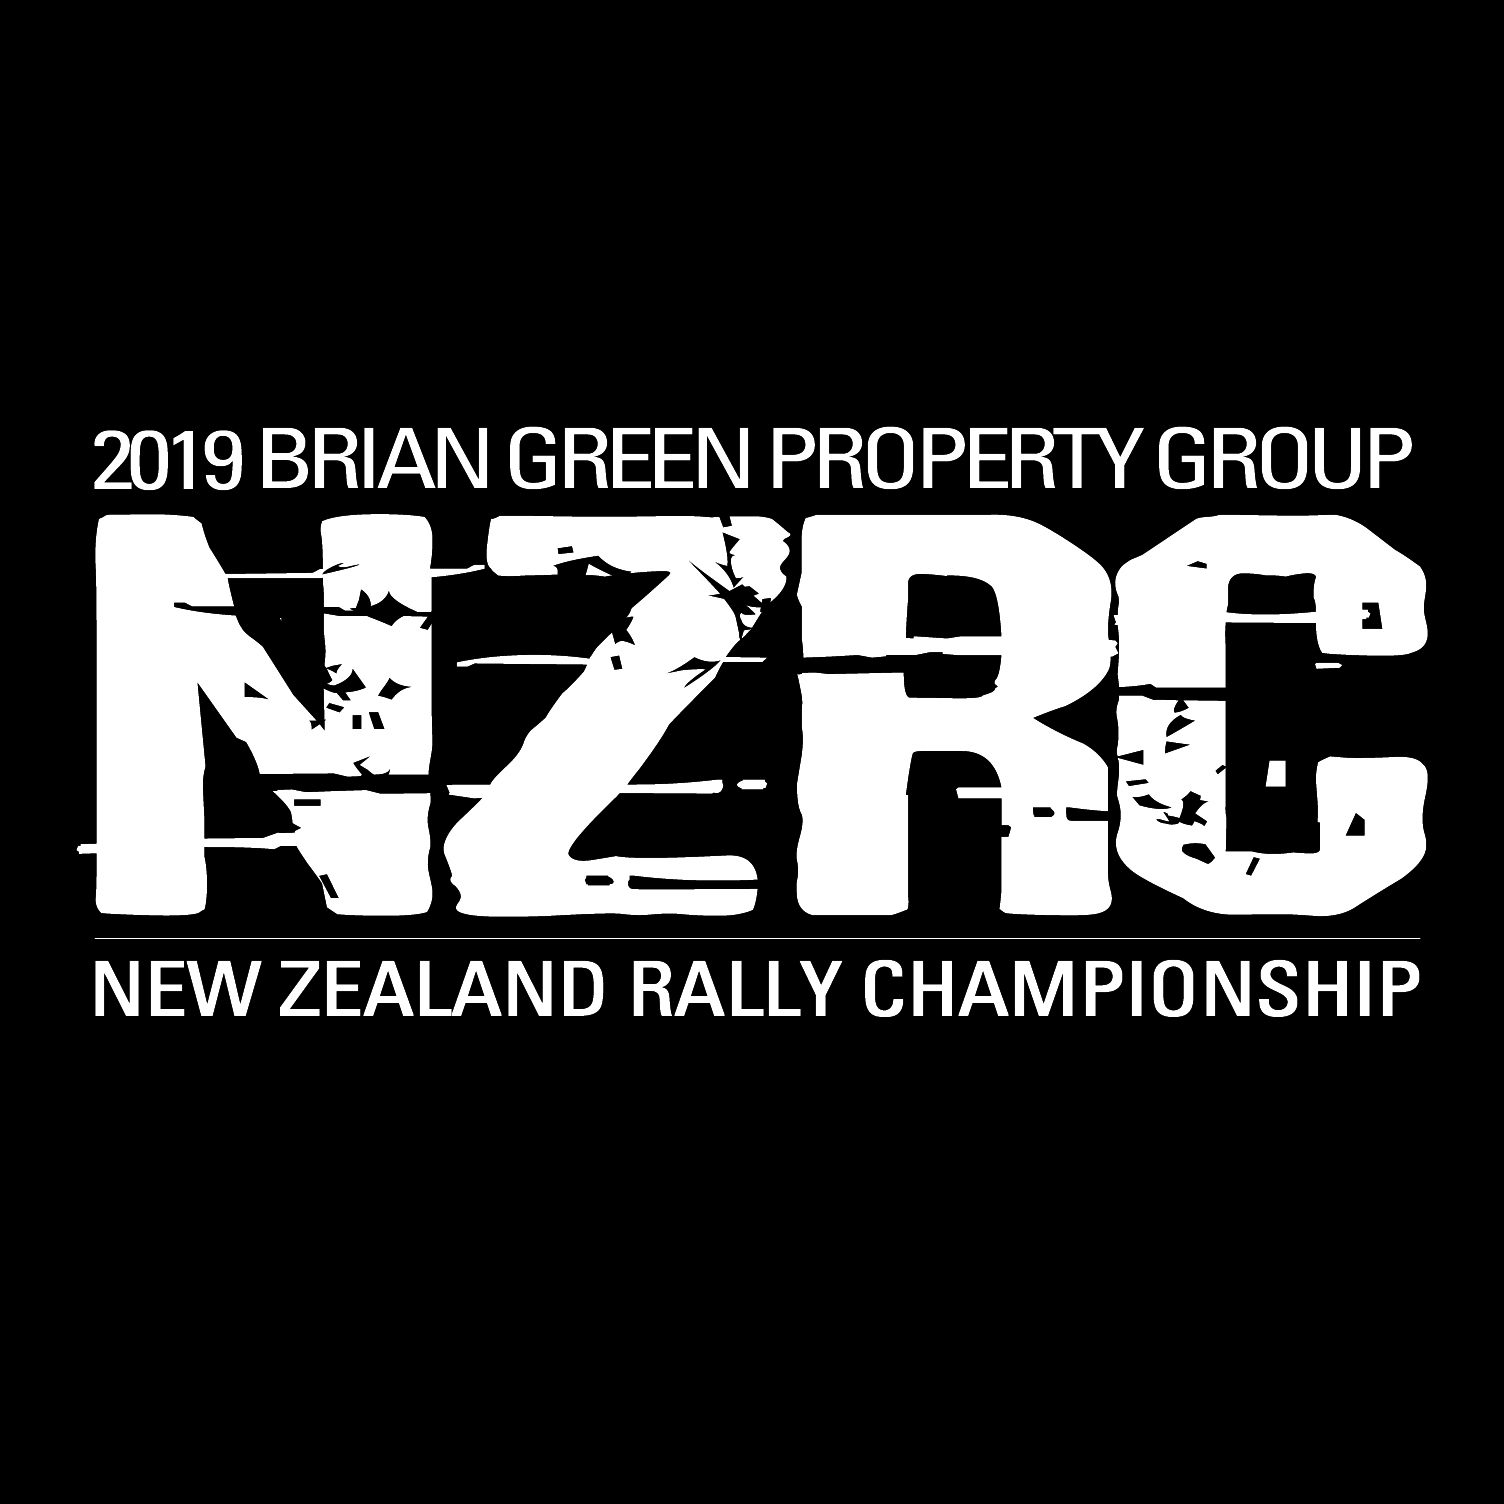 Race against time for debut of exciting new car | :: Brian Green Property Group New Zealand Rally Championship ::